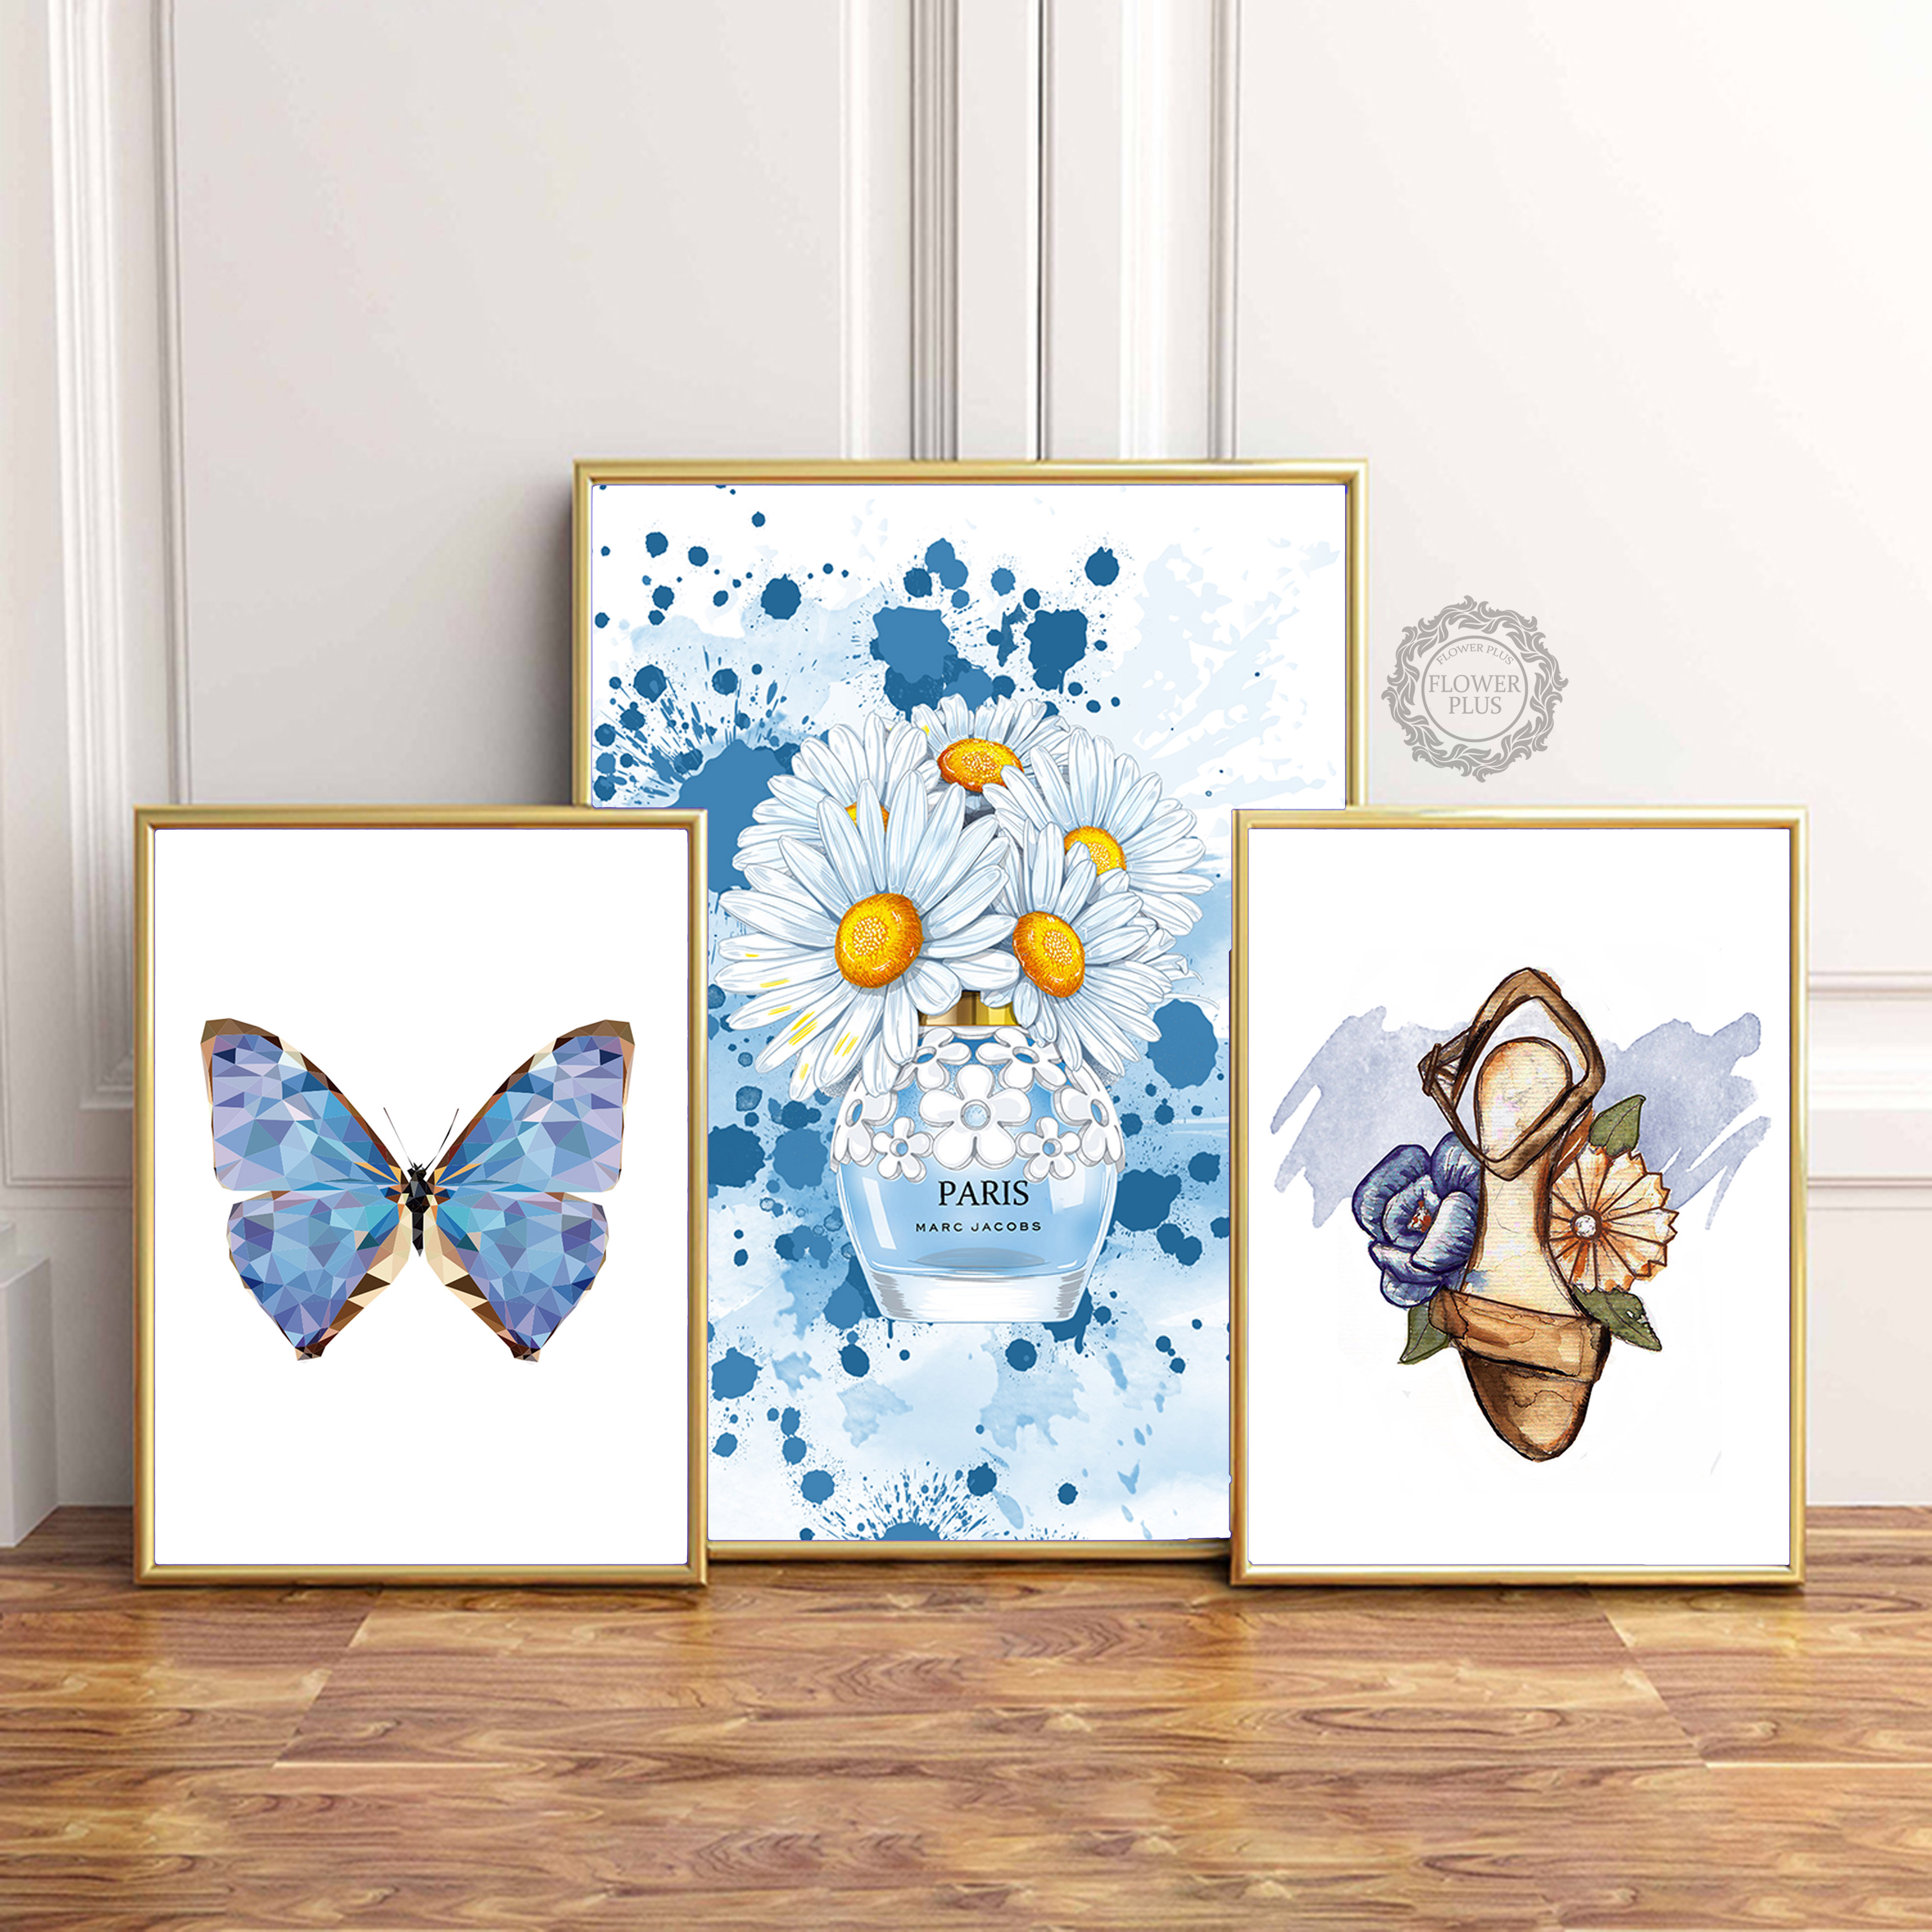 Vintage Butterfly On Music Book Canvas wall Art prints high quality great value